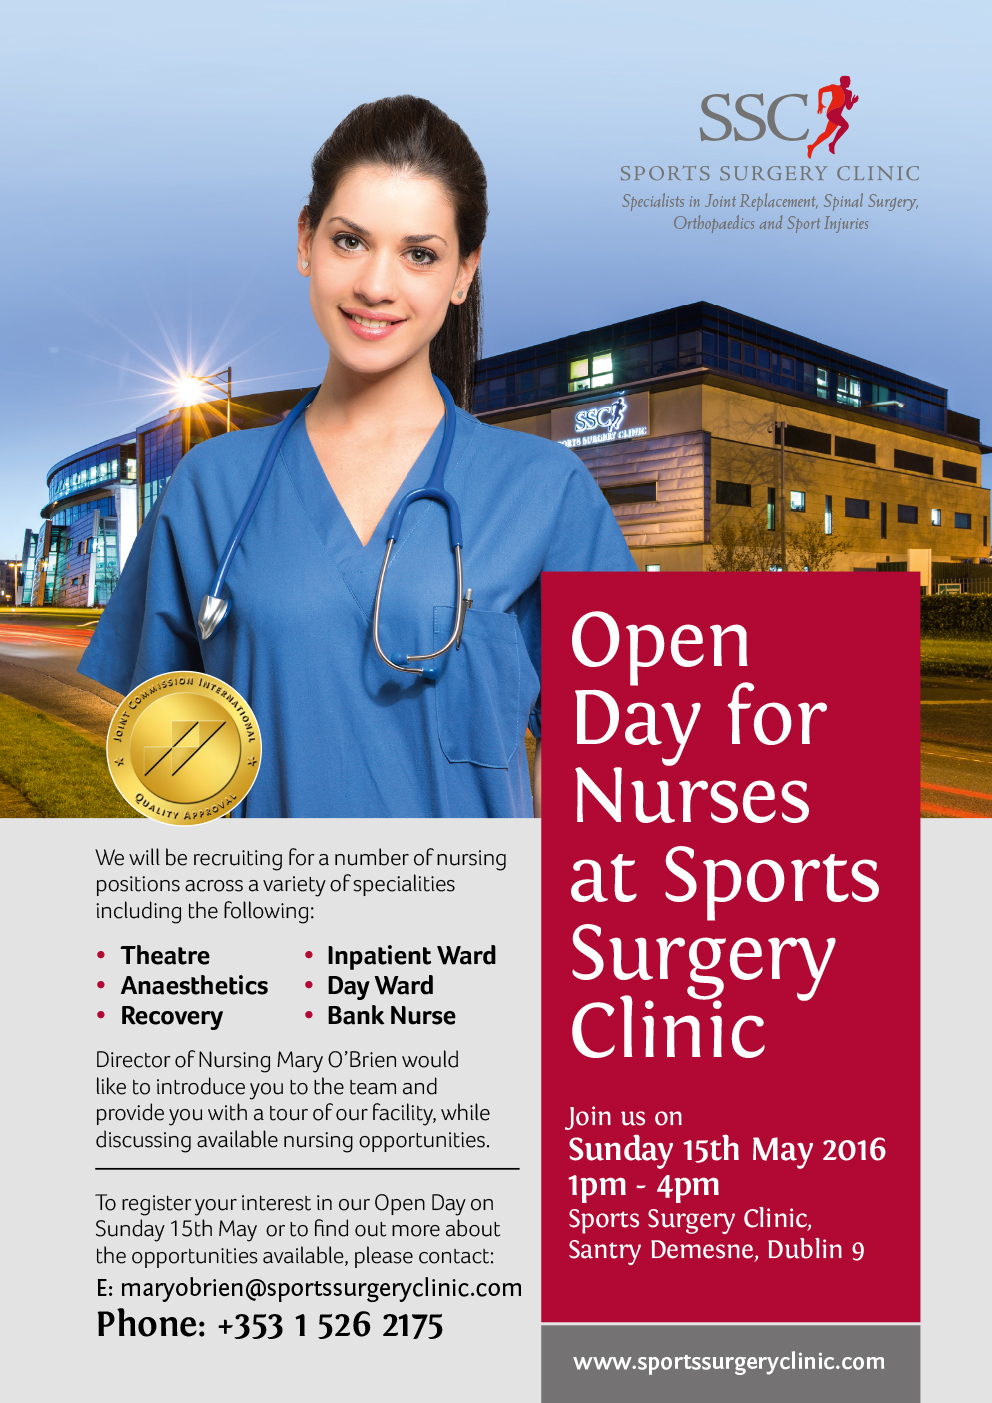 Open Day for Nurses at Sports Surgery Clinic